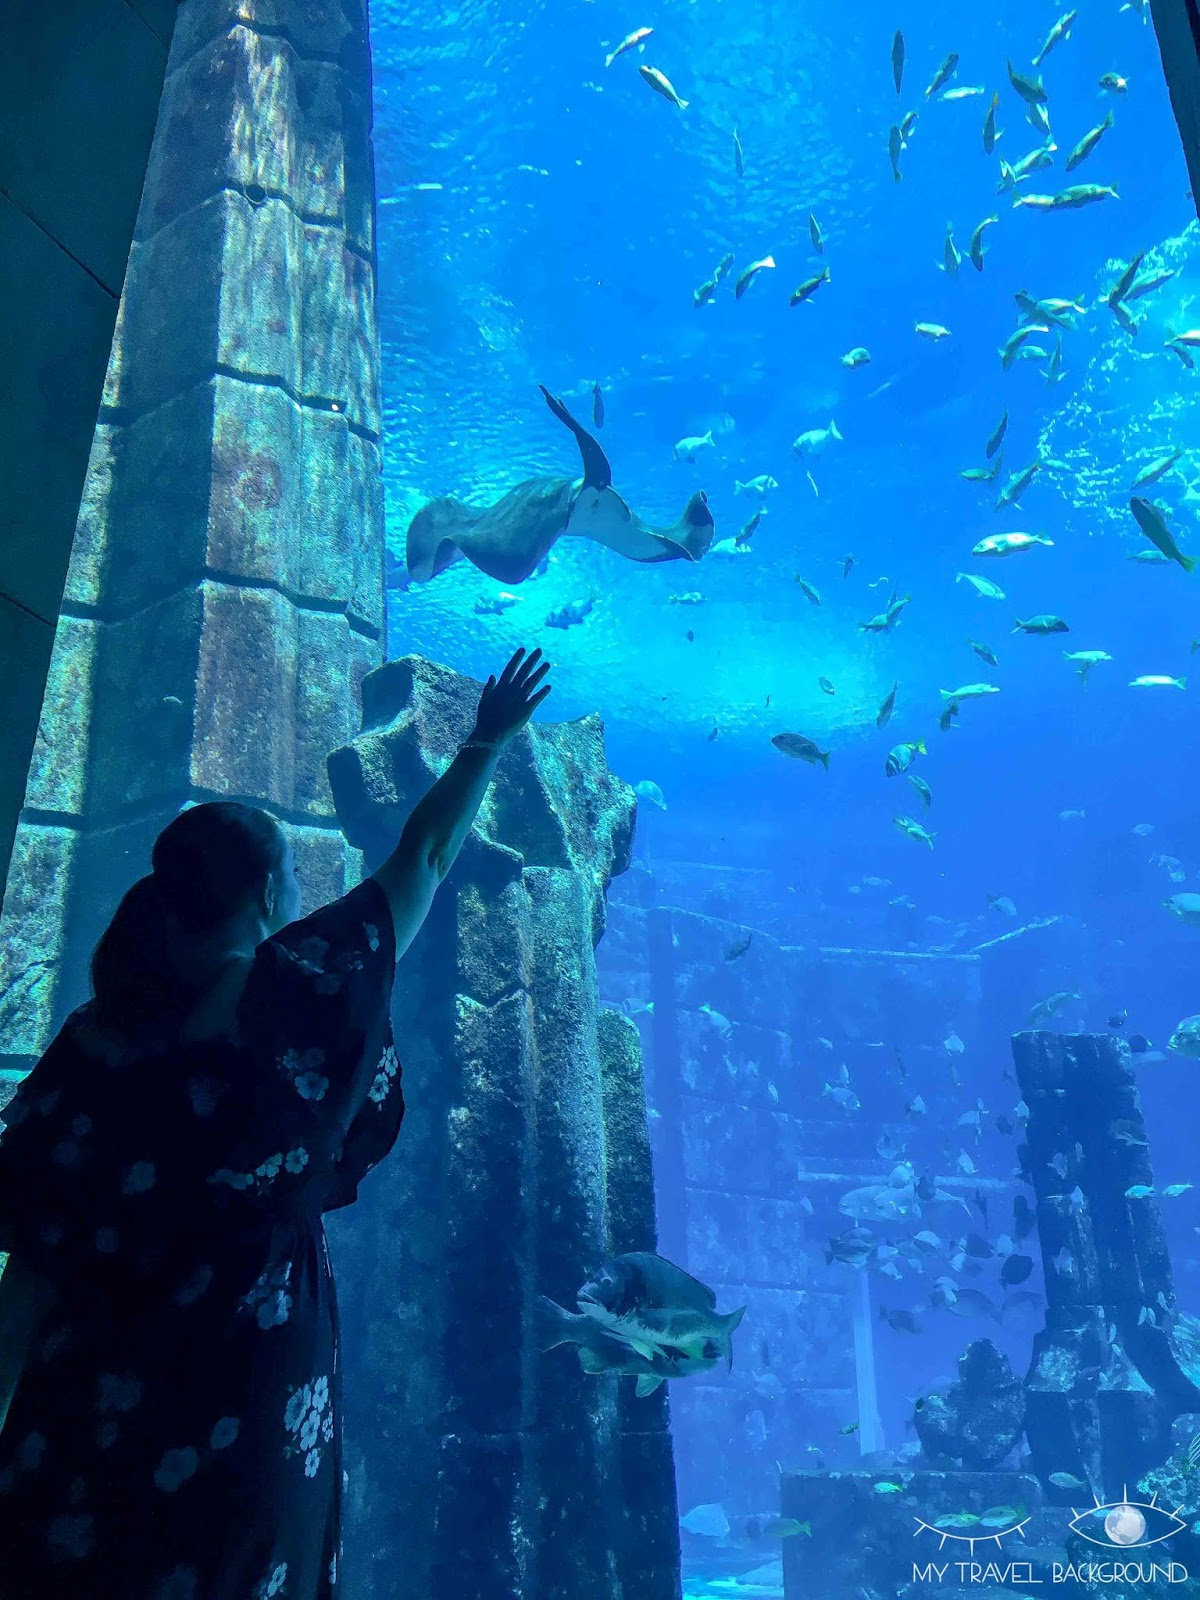 My Travel Background : Escale à Dubaï, que visiter en 3 jours ? - Atlantis The Palm, The Lost Chamber